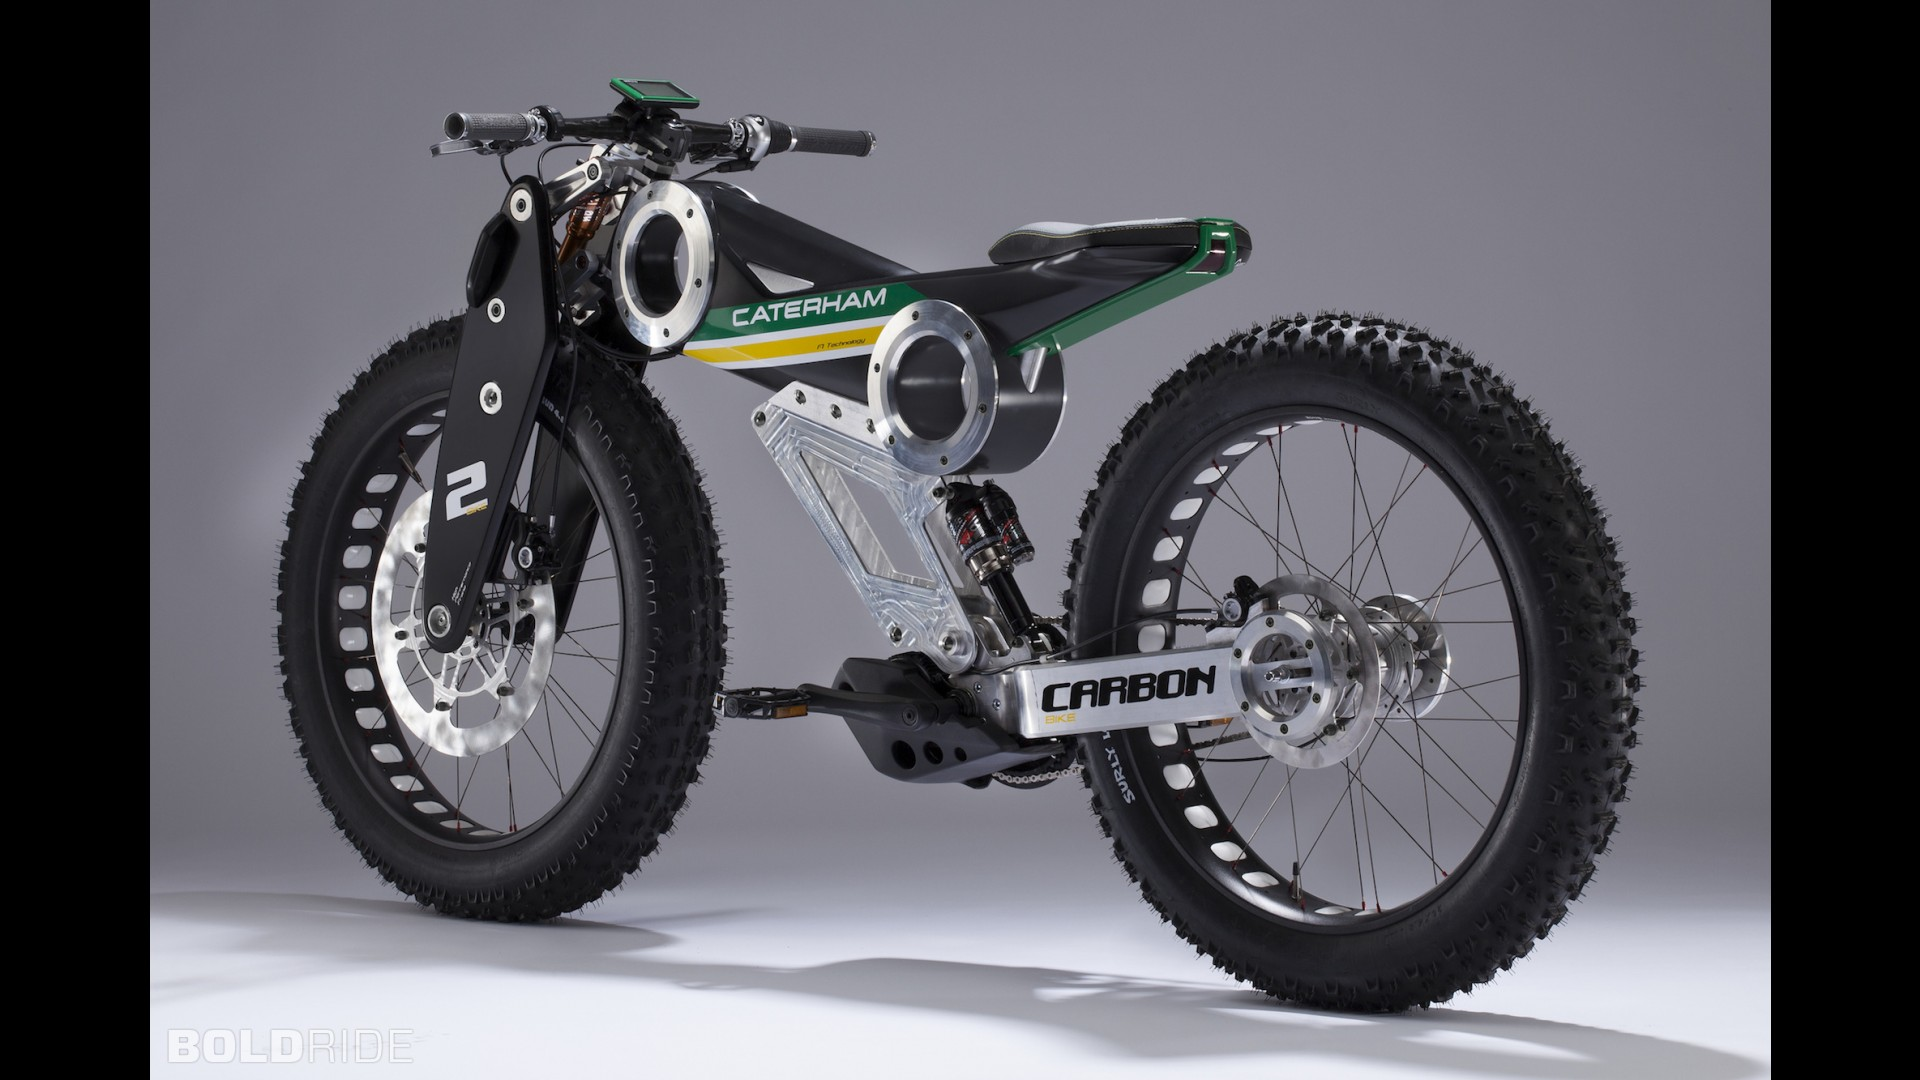 Caterham Carbon E-Bike